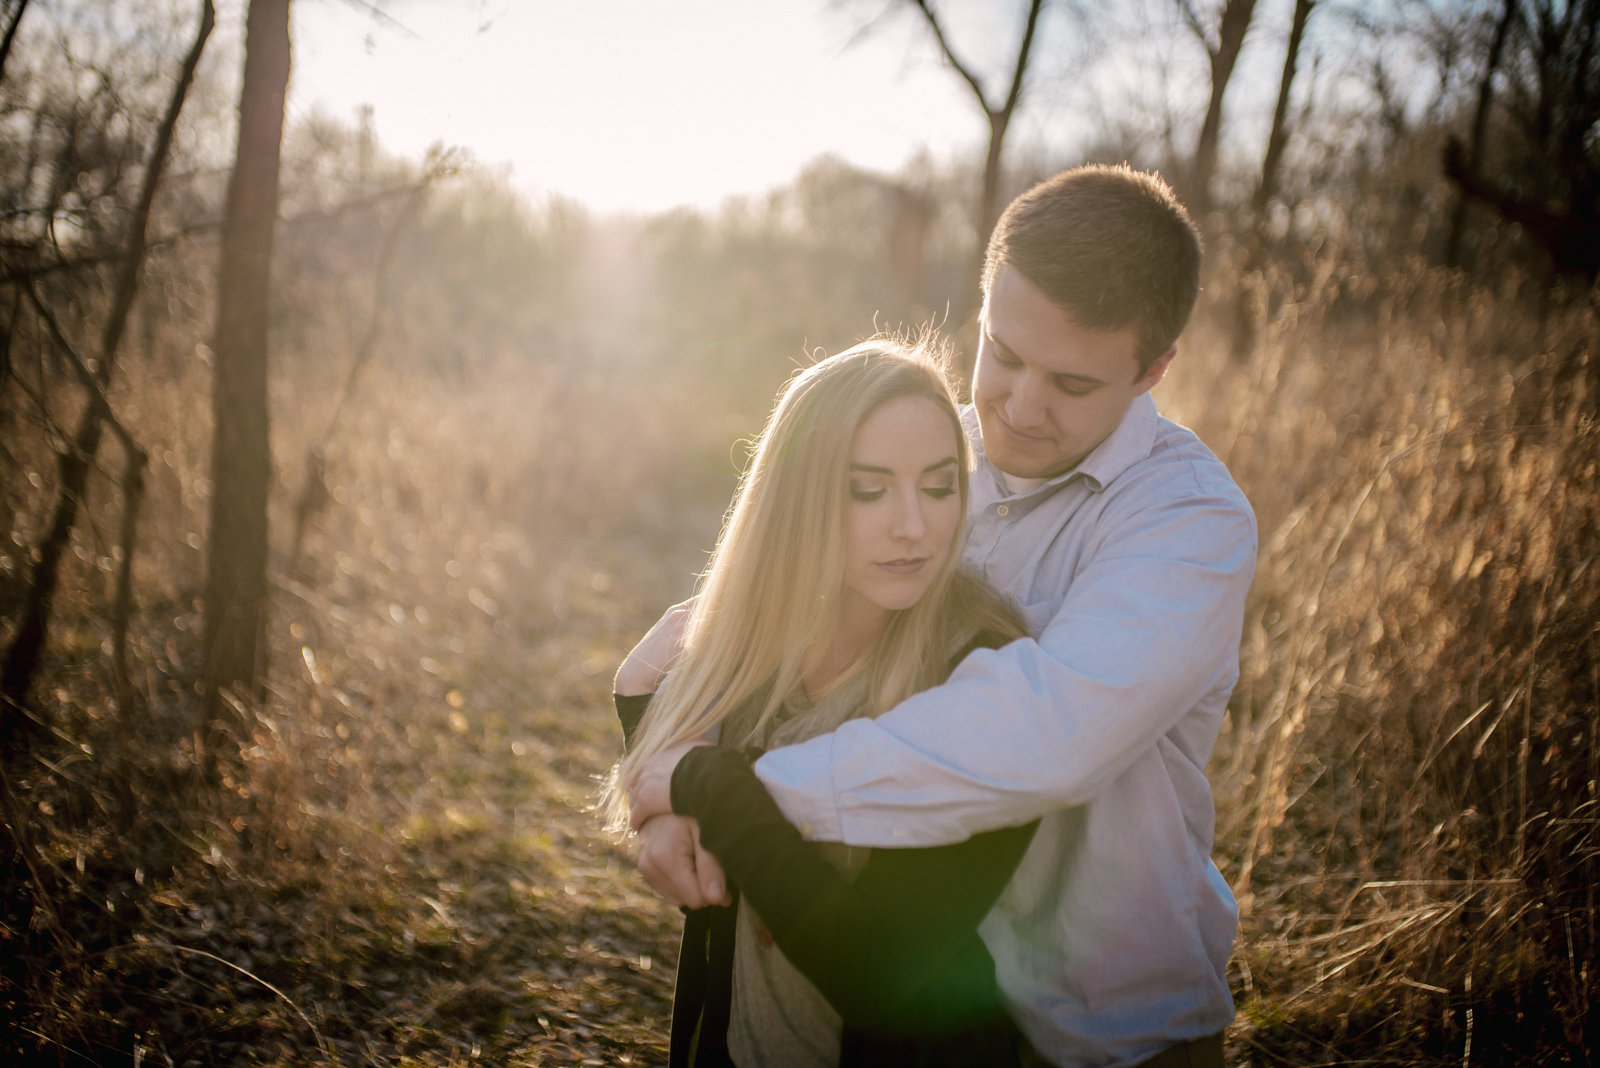 couple in romantic pose at golden hour